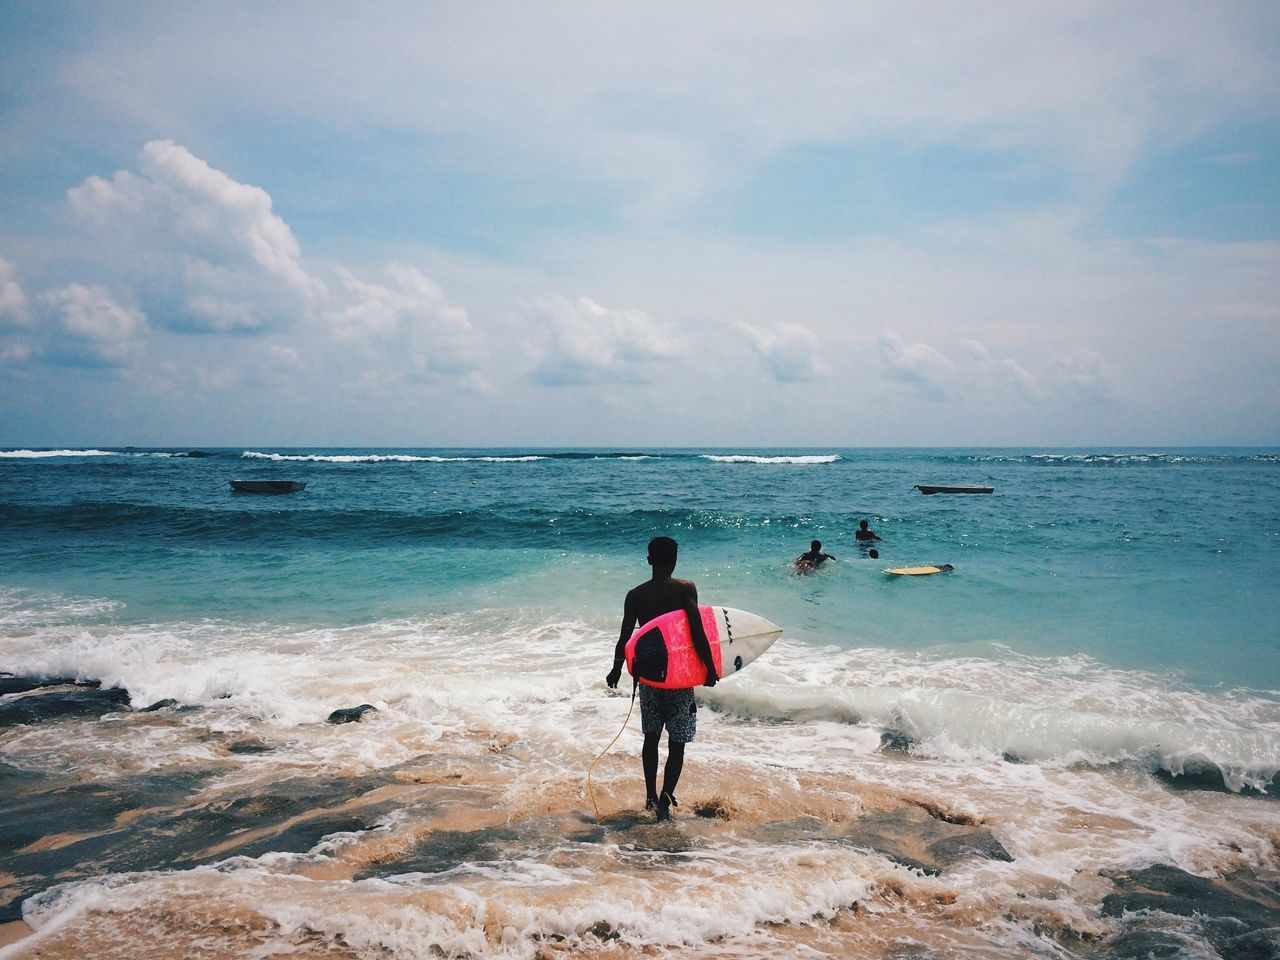 Bali INDONESIA Streetphotography Surf's Up Uluwatu Faces Of Summer Summer Views